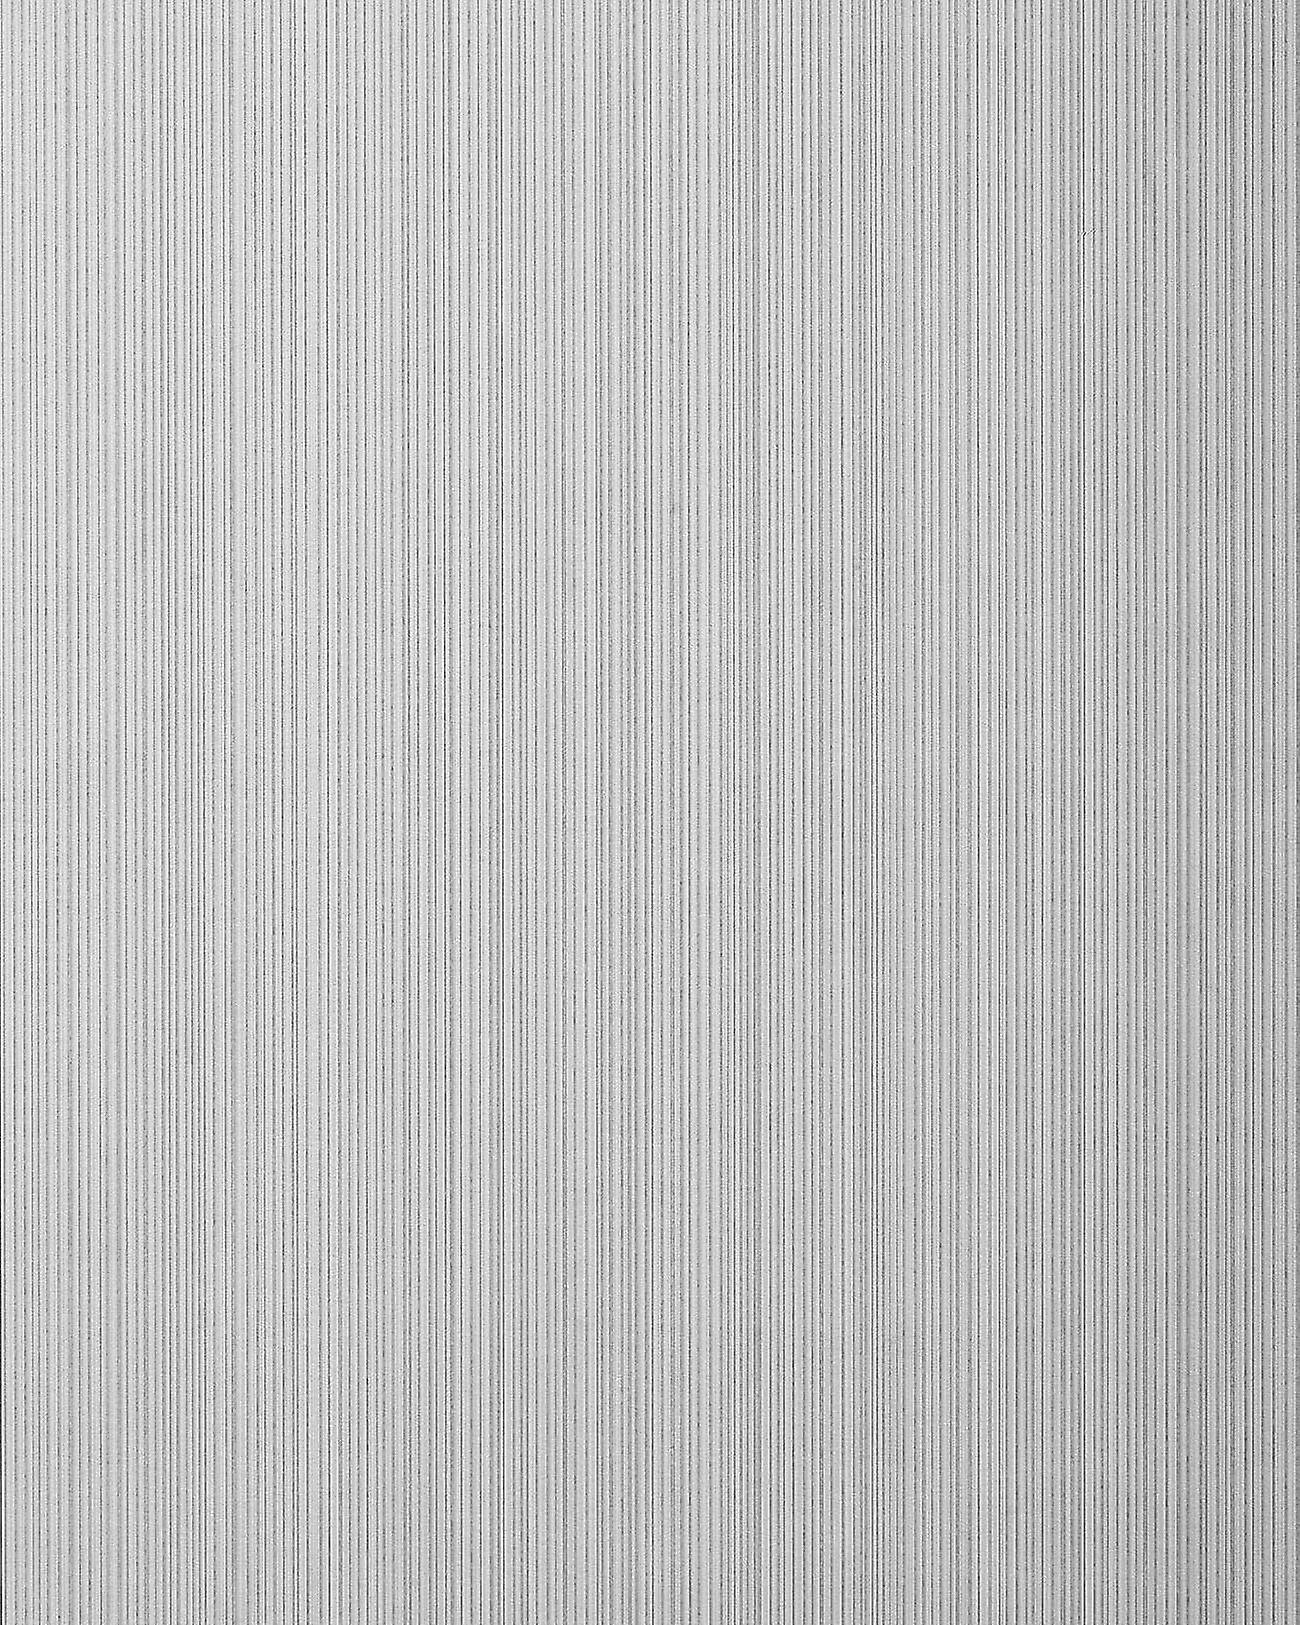 Stripe Wallpaper EDEM 557 16 Structured High Quality Signal Gray Silver 533